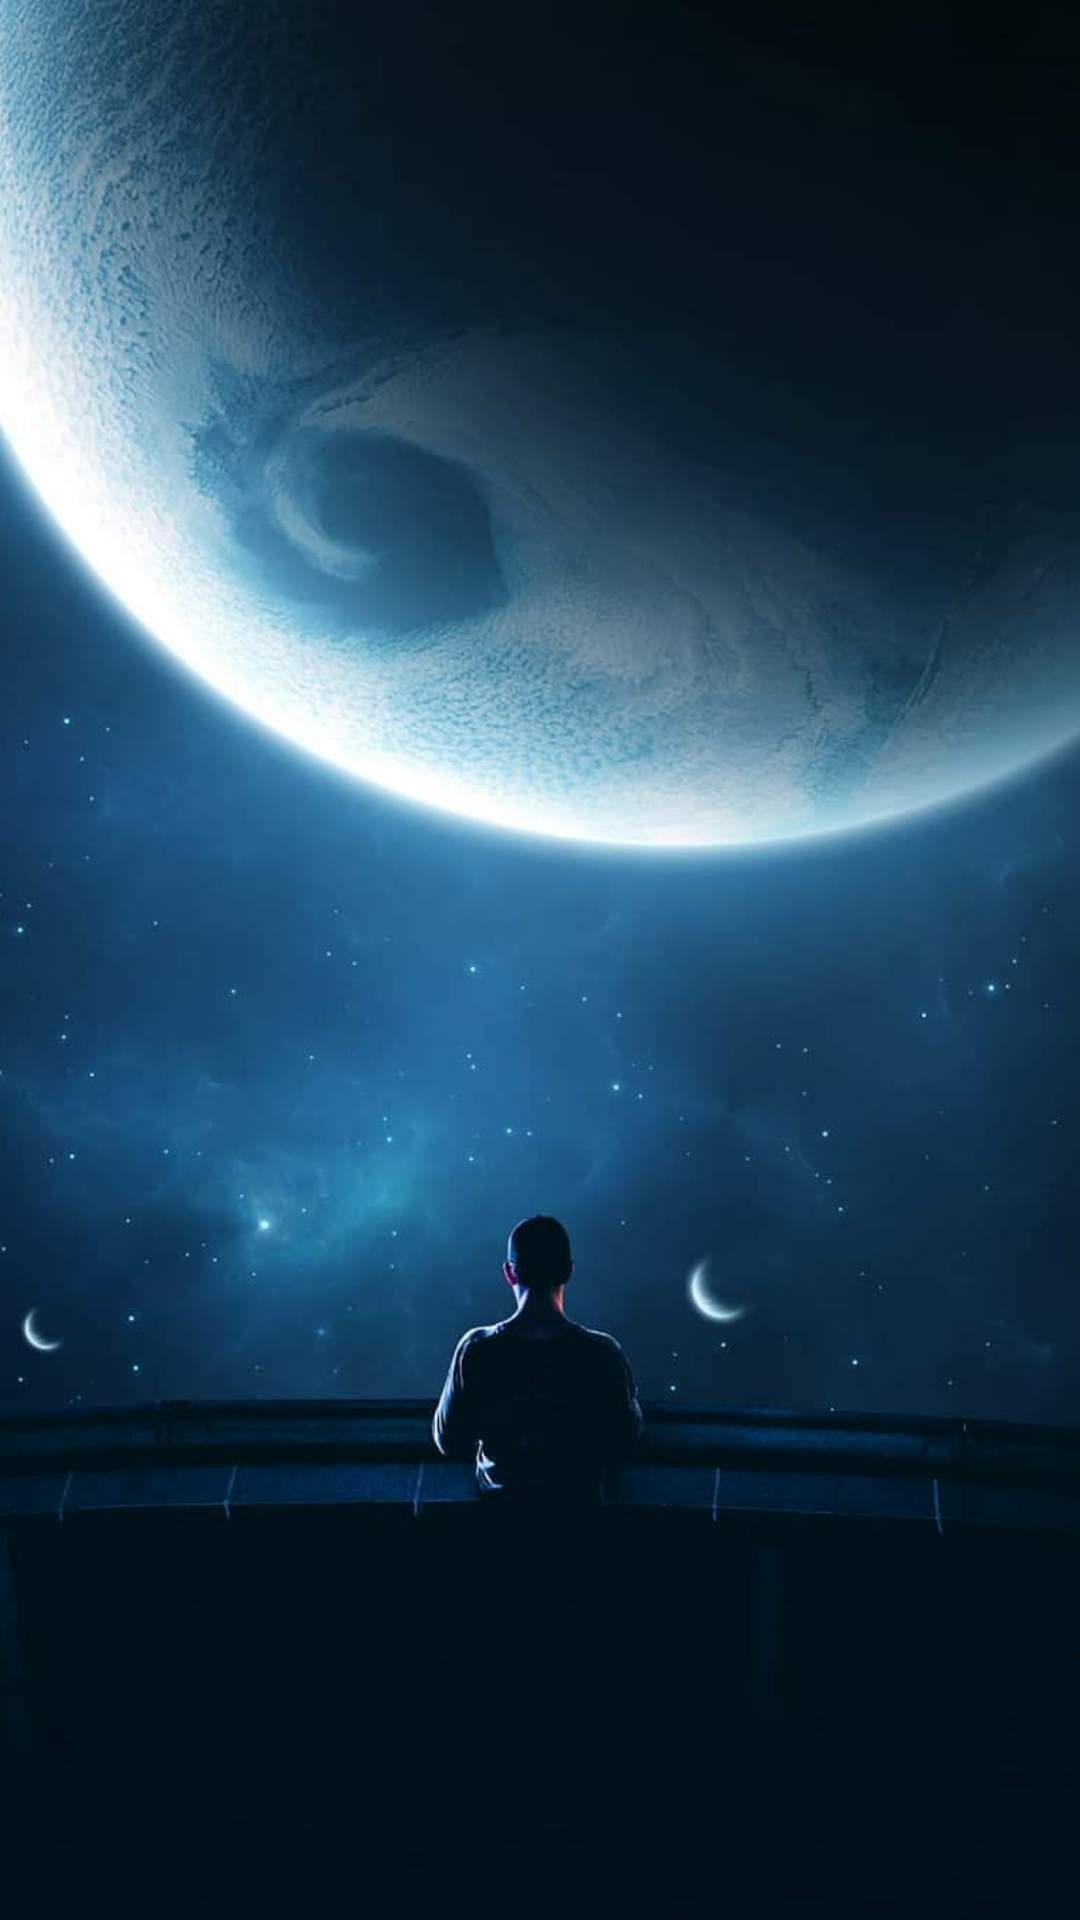 Explore Space iPhone Wallpaper